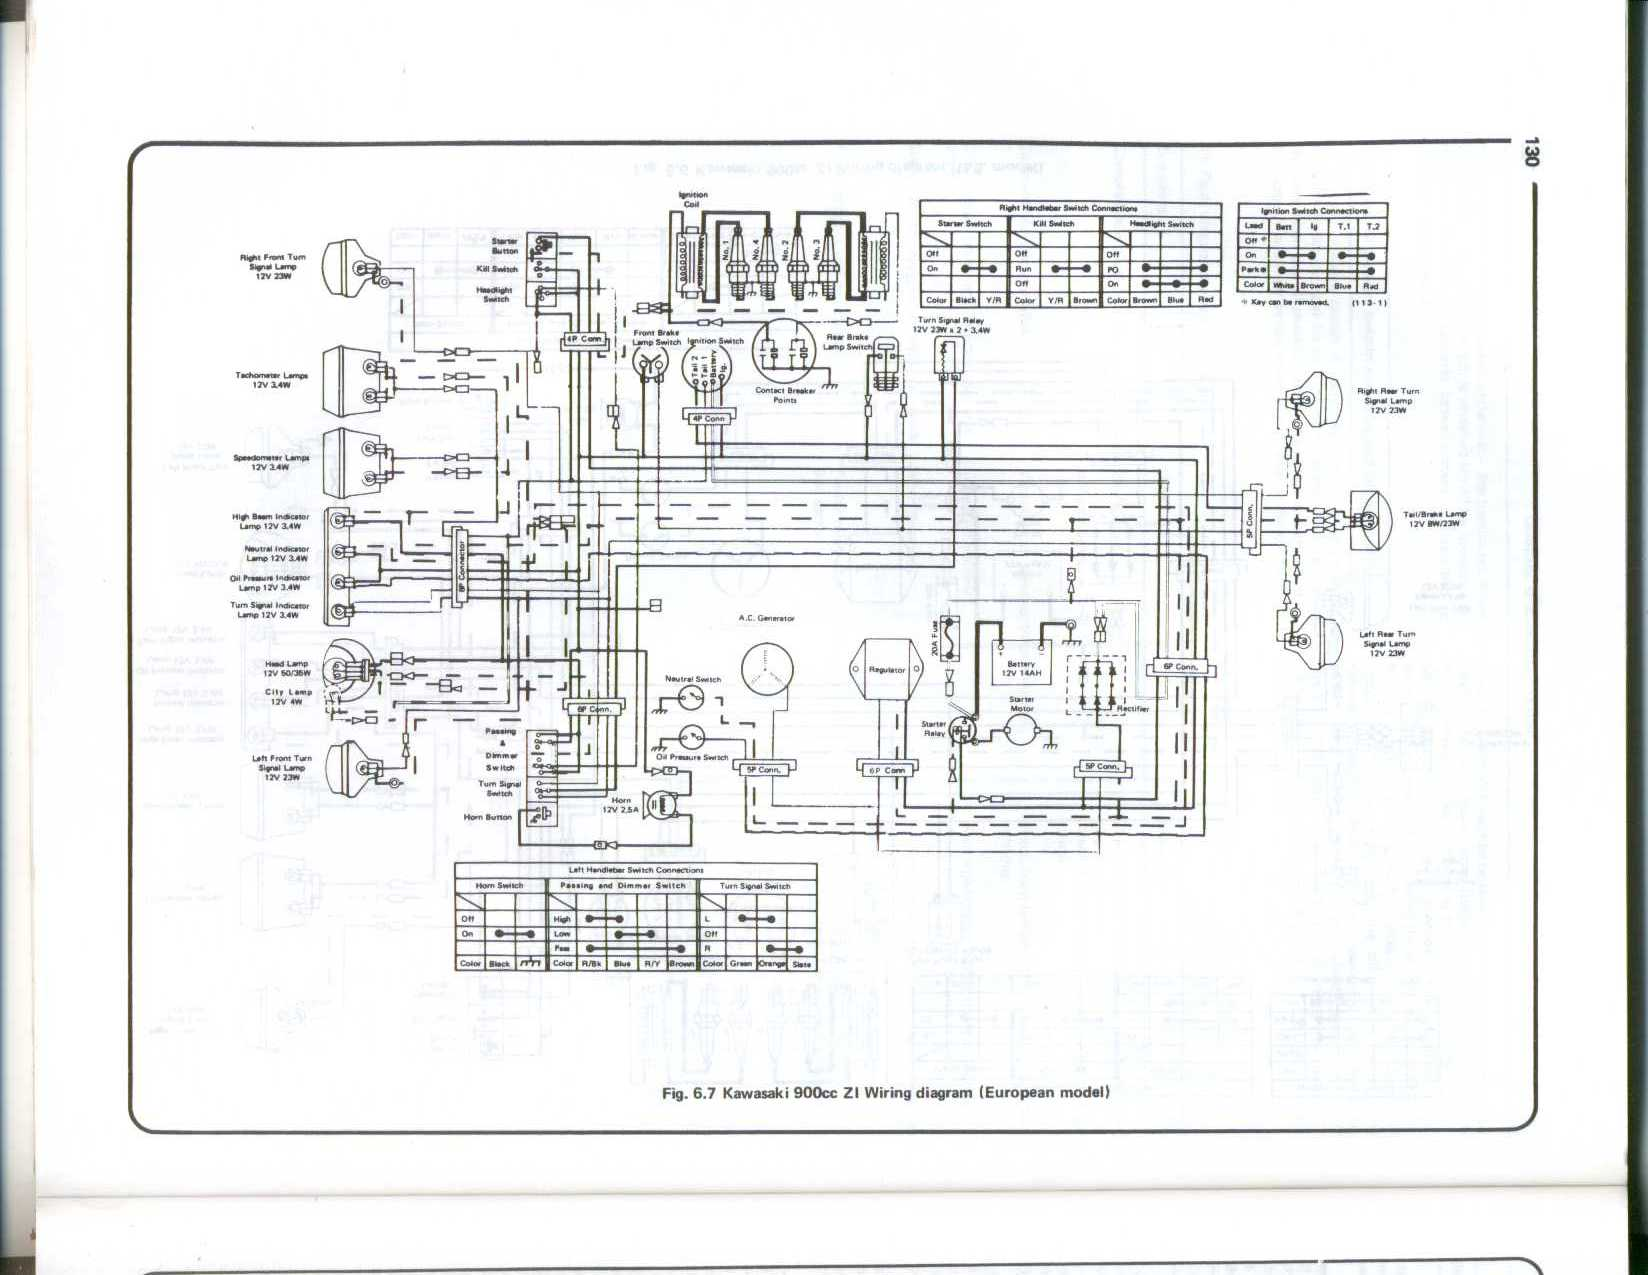 Kawasaki K Z 900 Wiring Harness Control Diagram 1976 Kz400 Schematic Index Of Kz Electrical Rh Kz900 Com